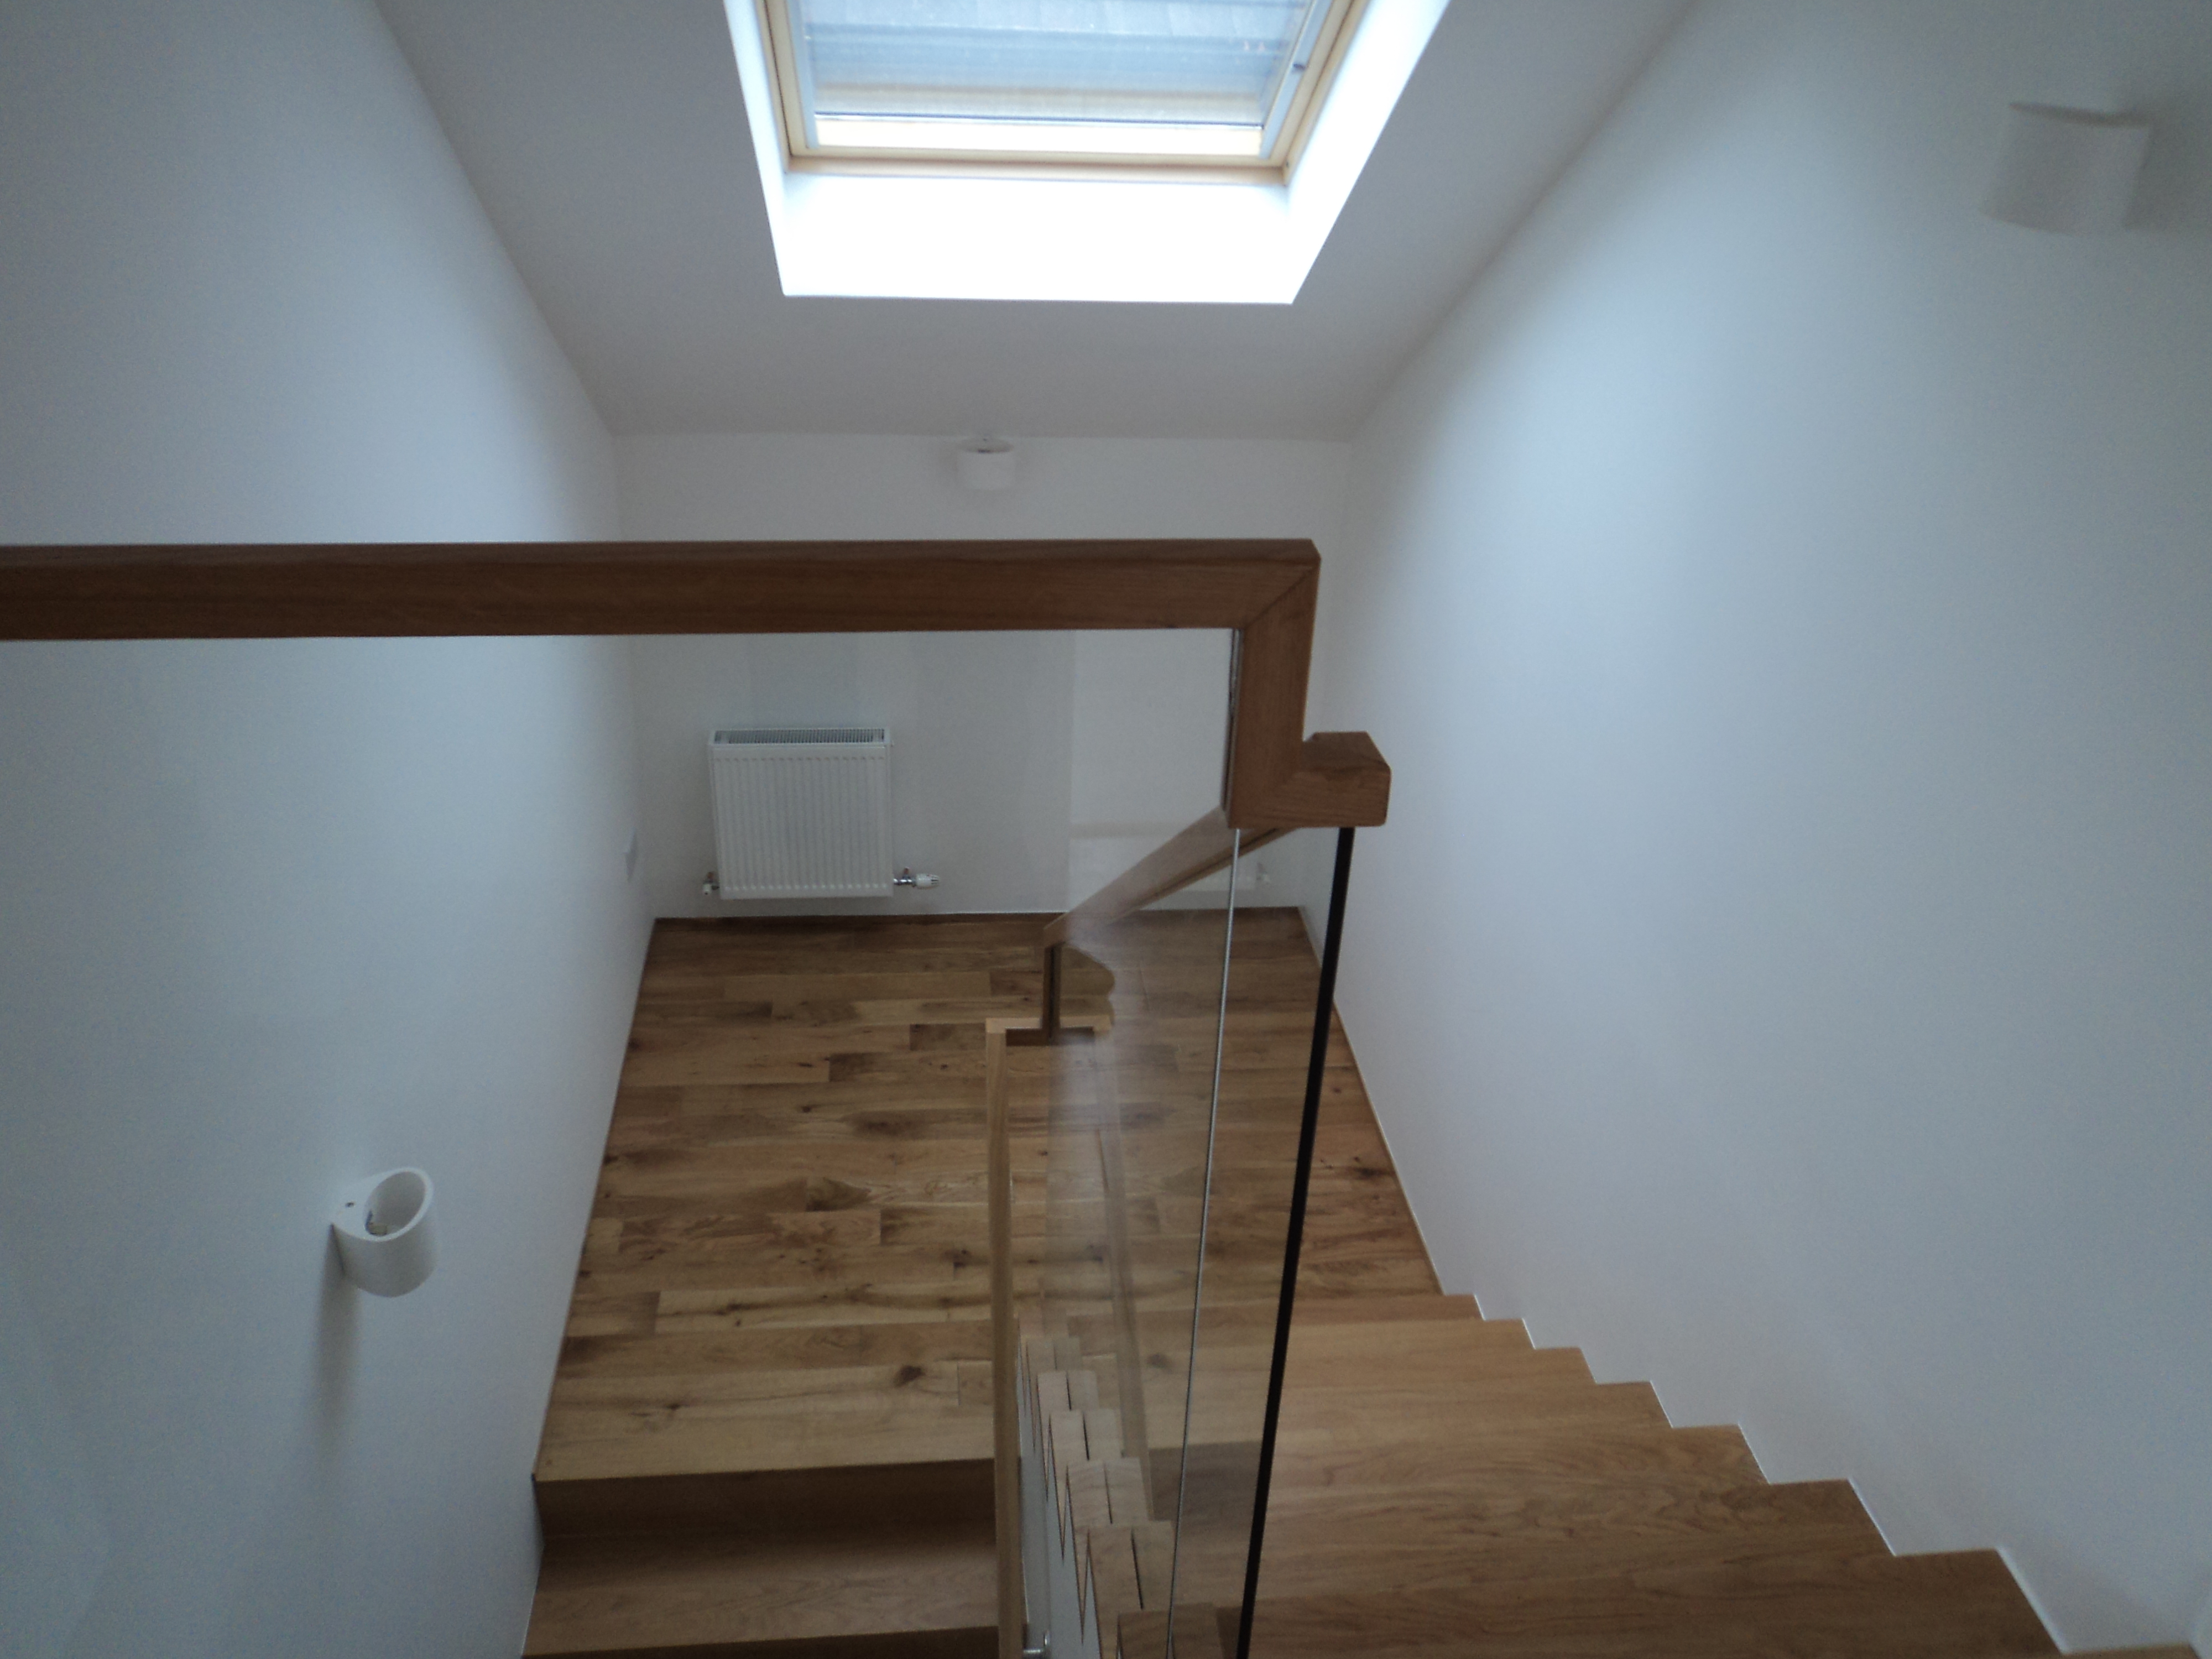 Attic loft conversion with new staircase in Redcross, Co. Wicklow